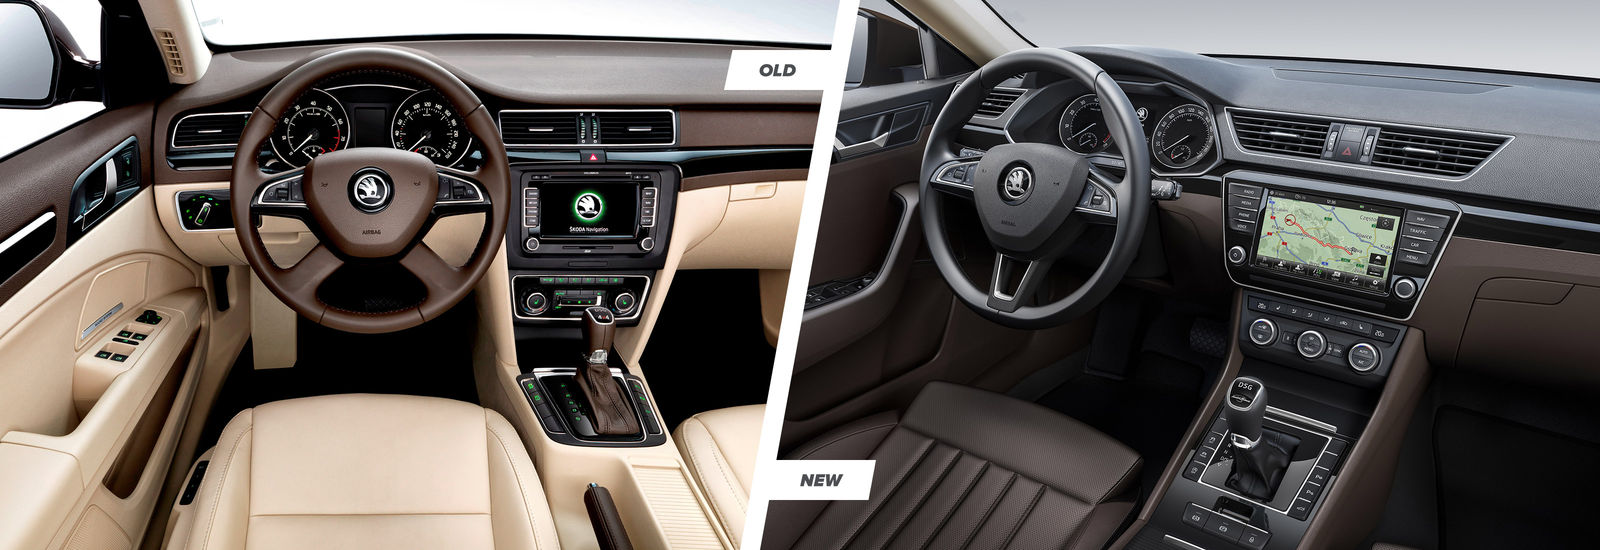 2015 Skoda Superb Old And New Compared Carwow